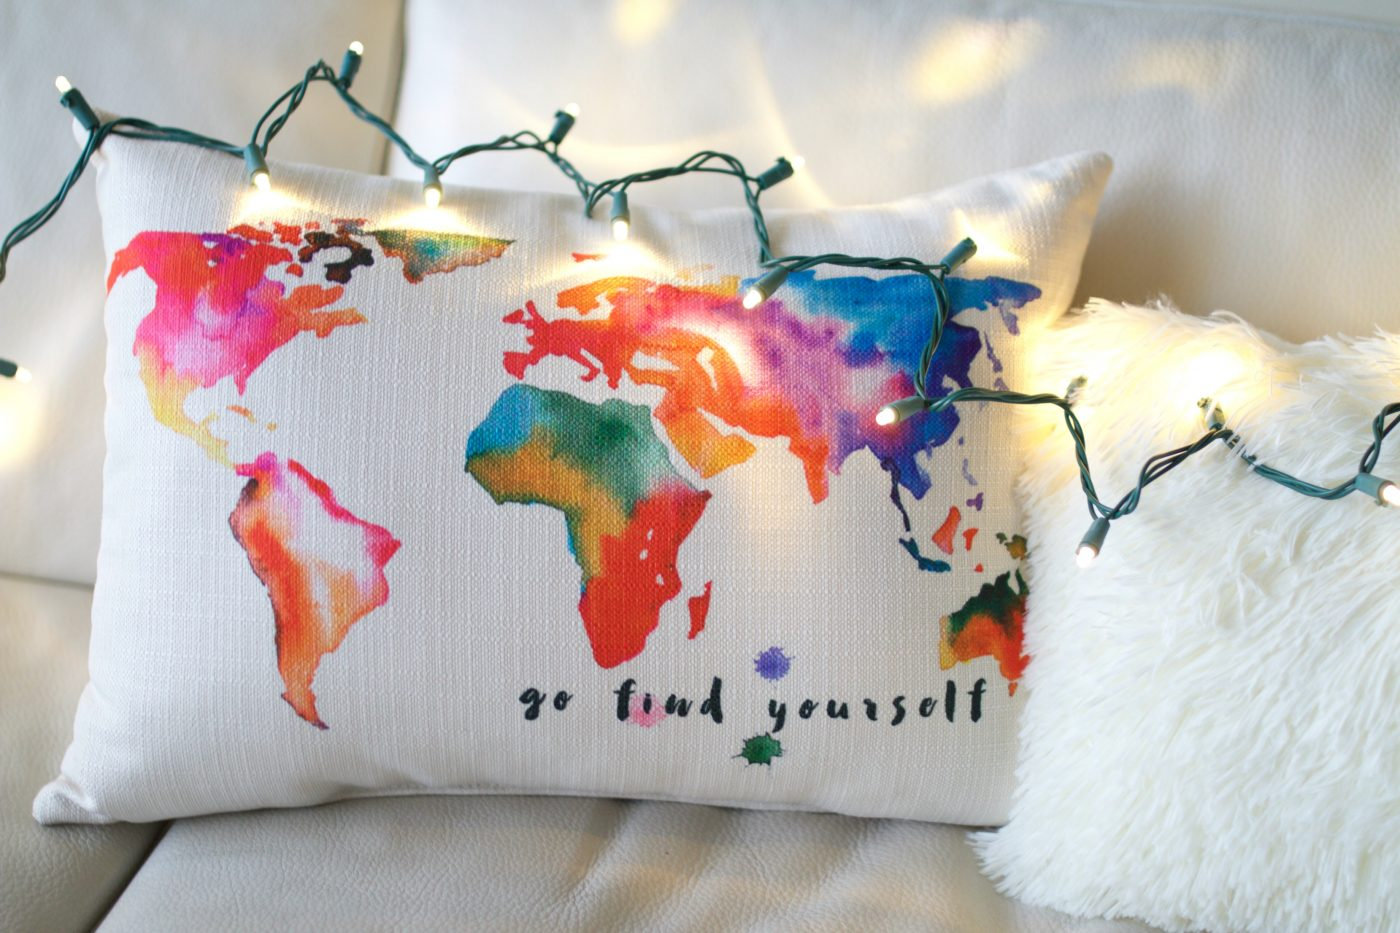 Go Find yourself world map pillow